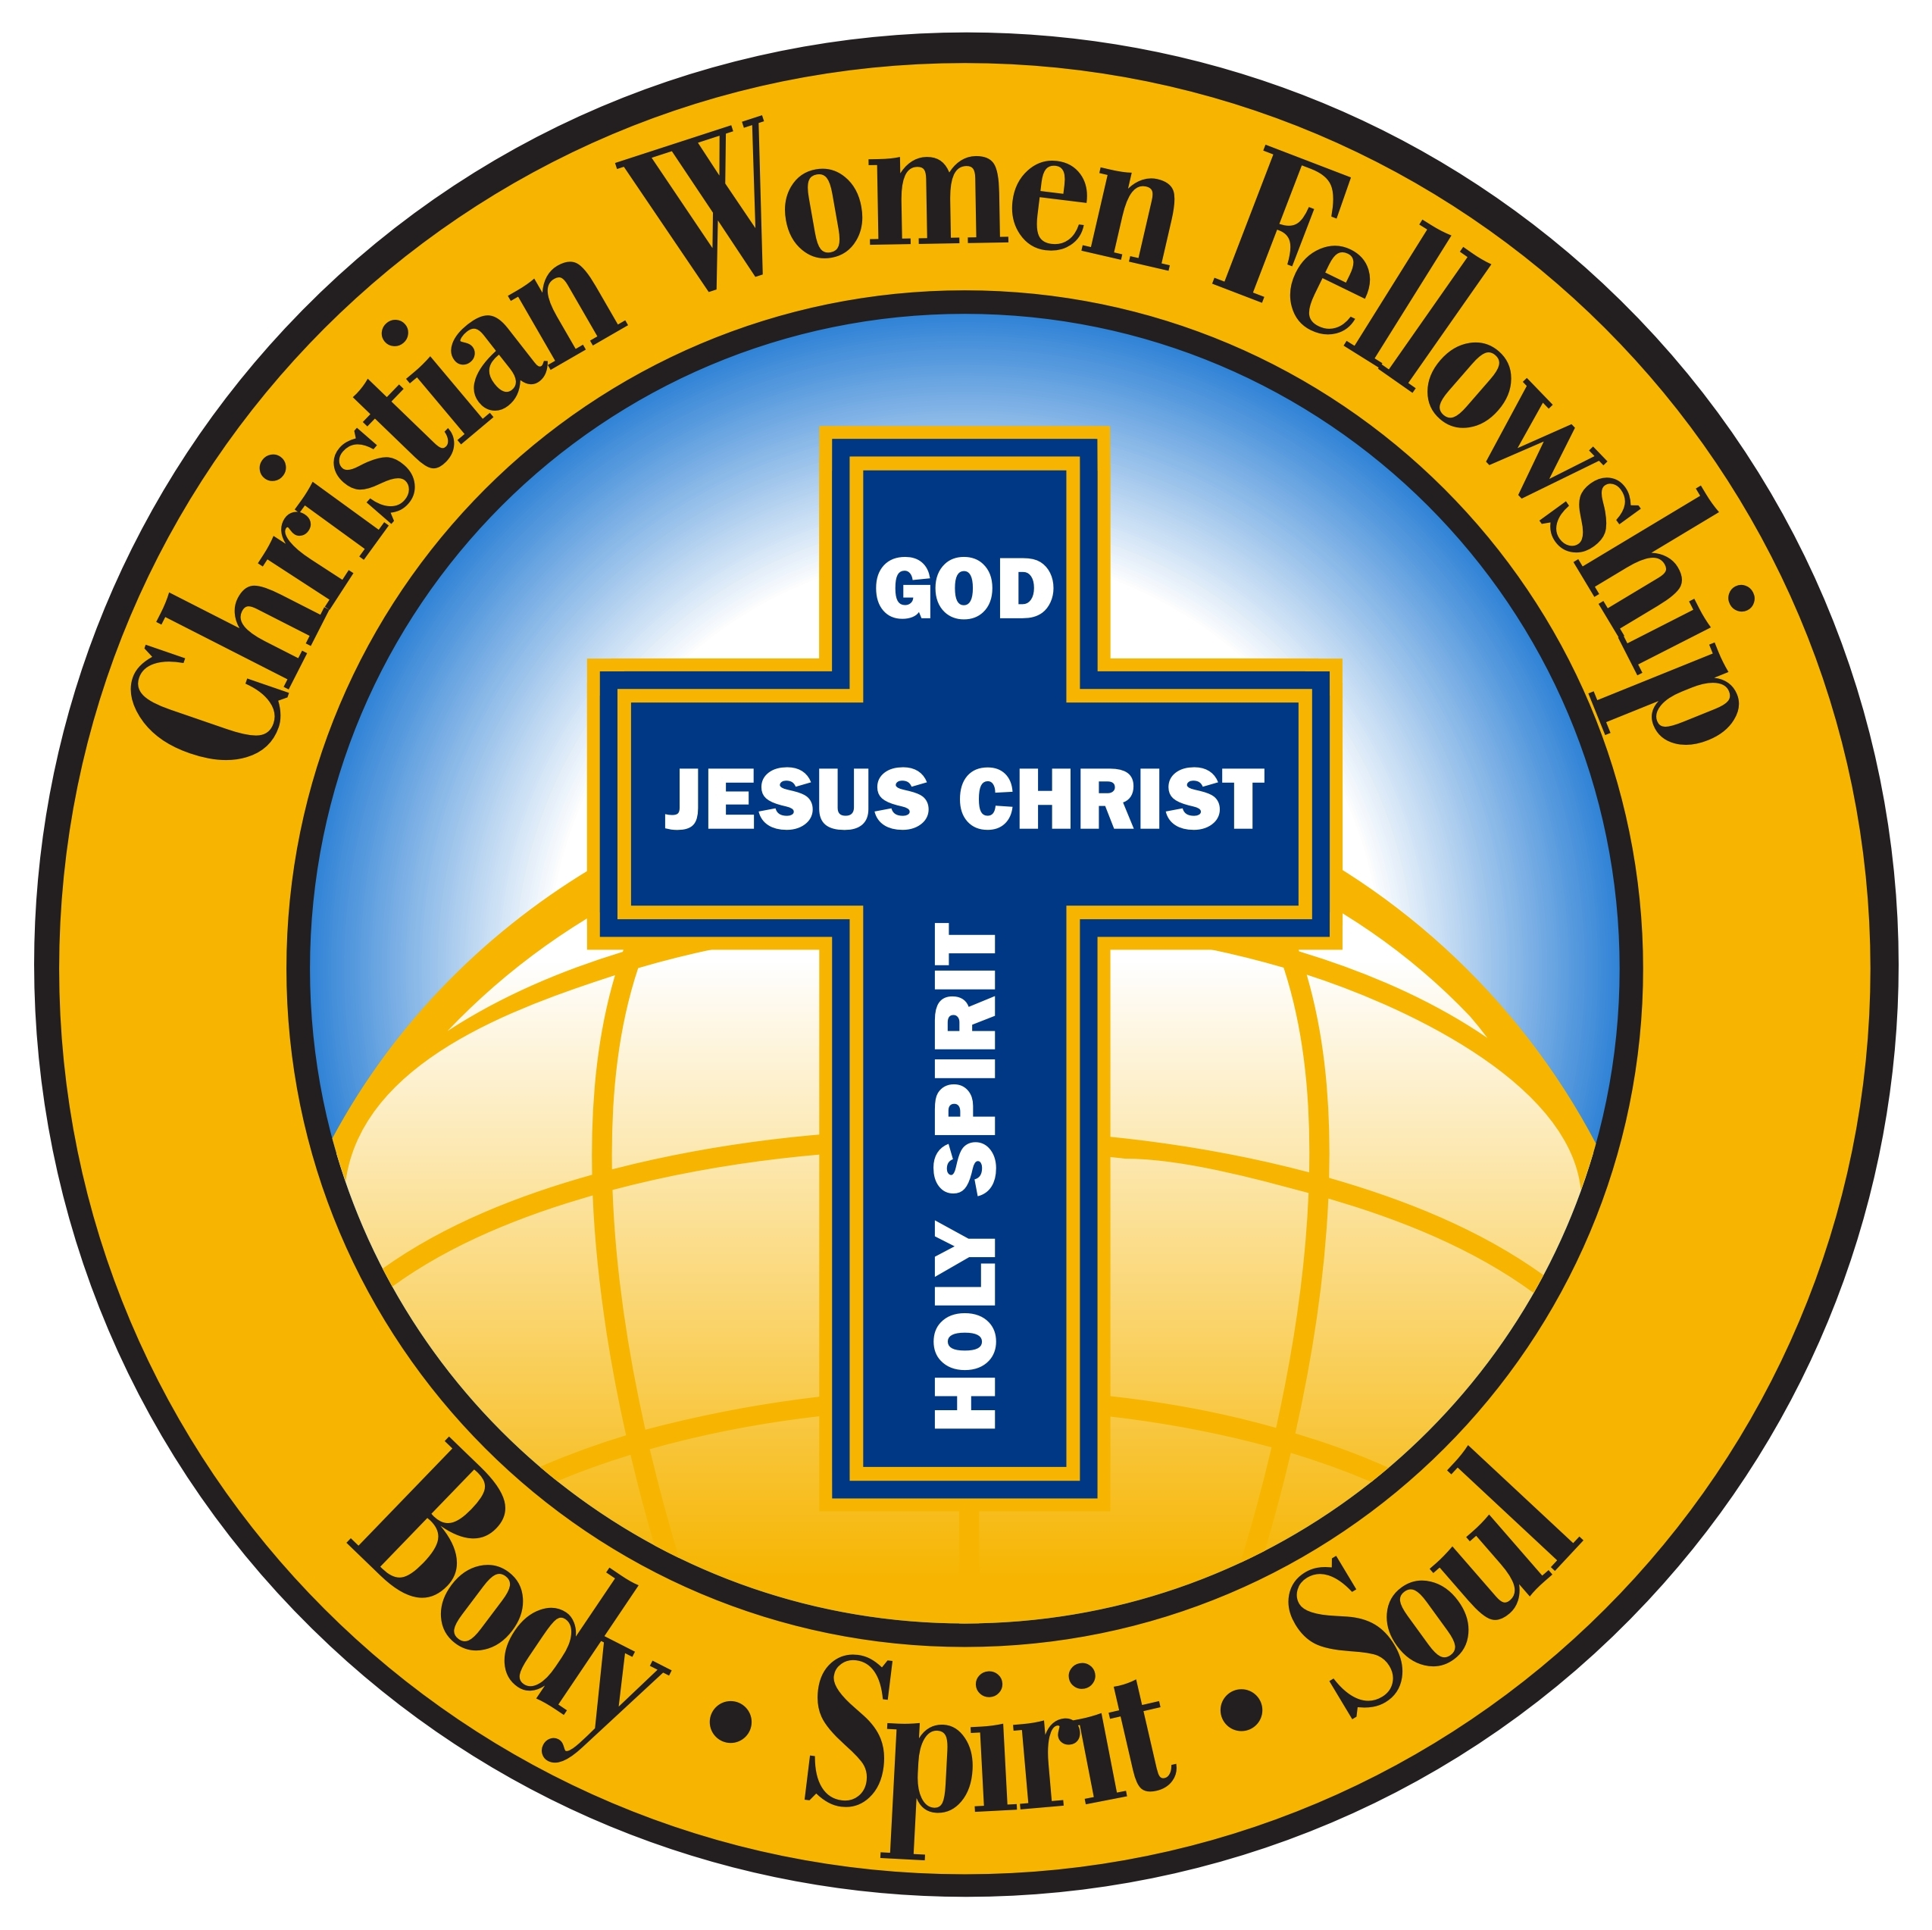 Men amp women fellowships christian faith world ministries center